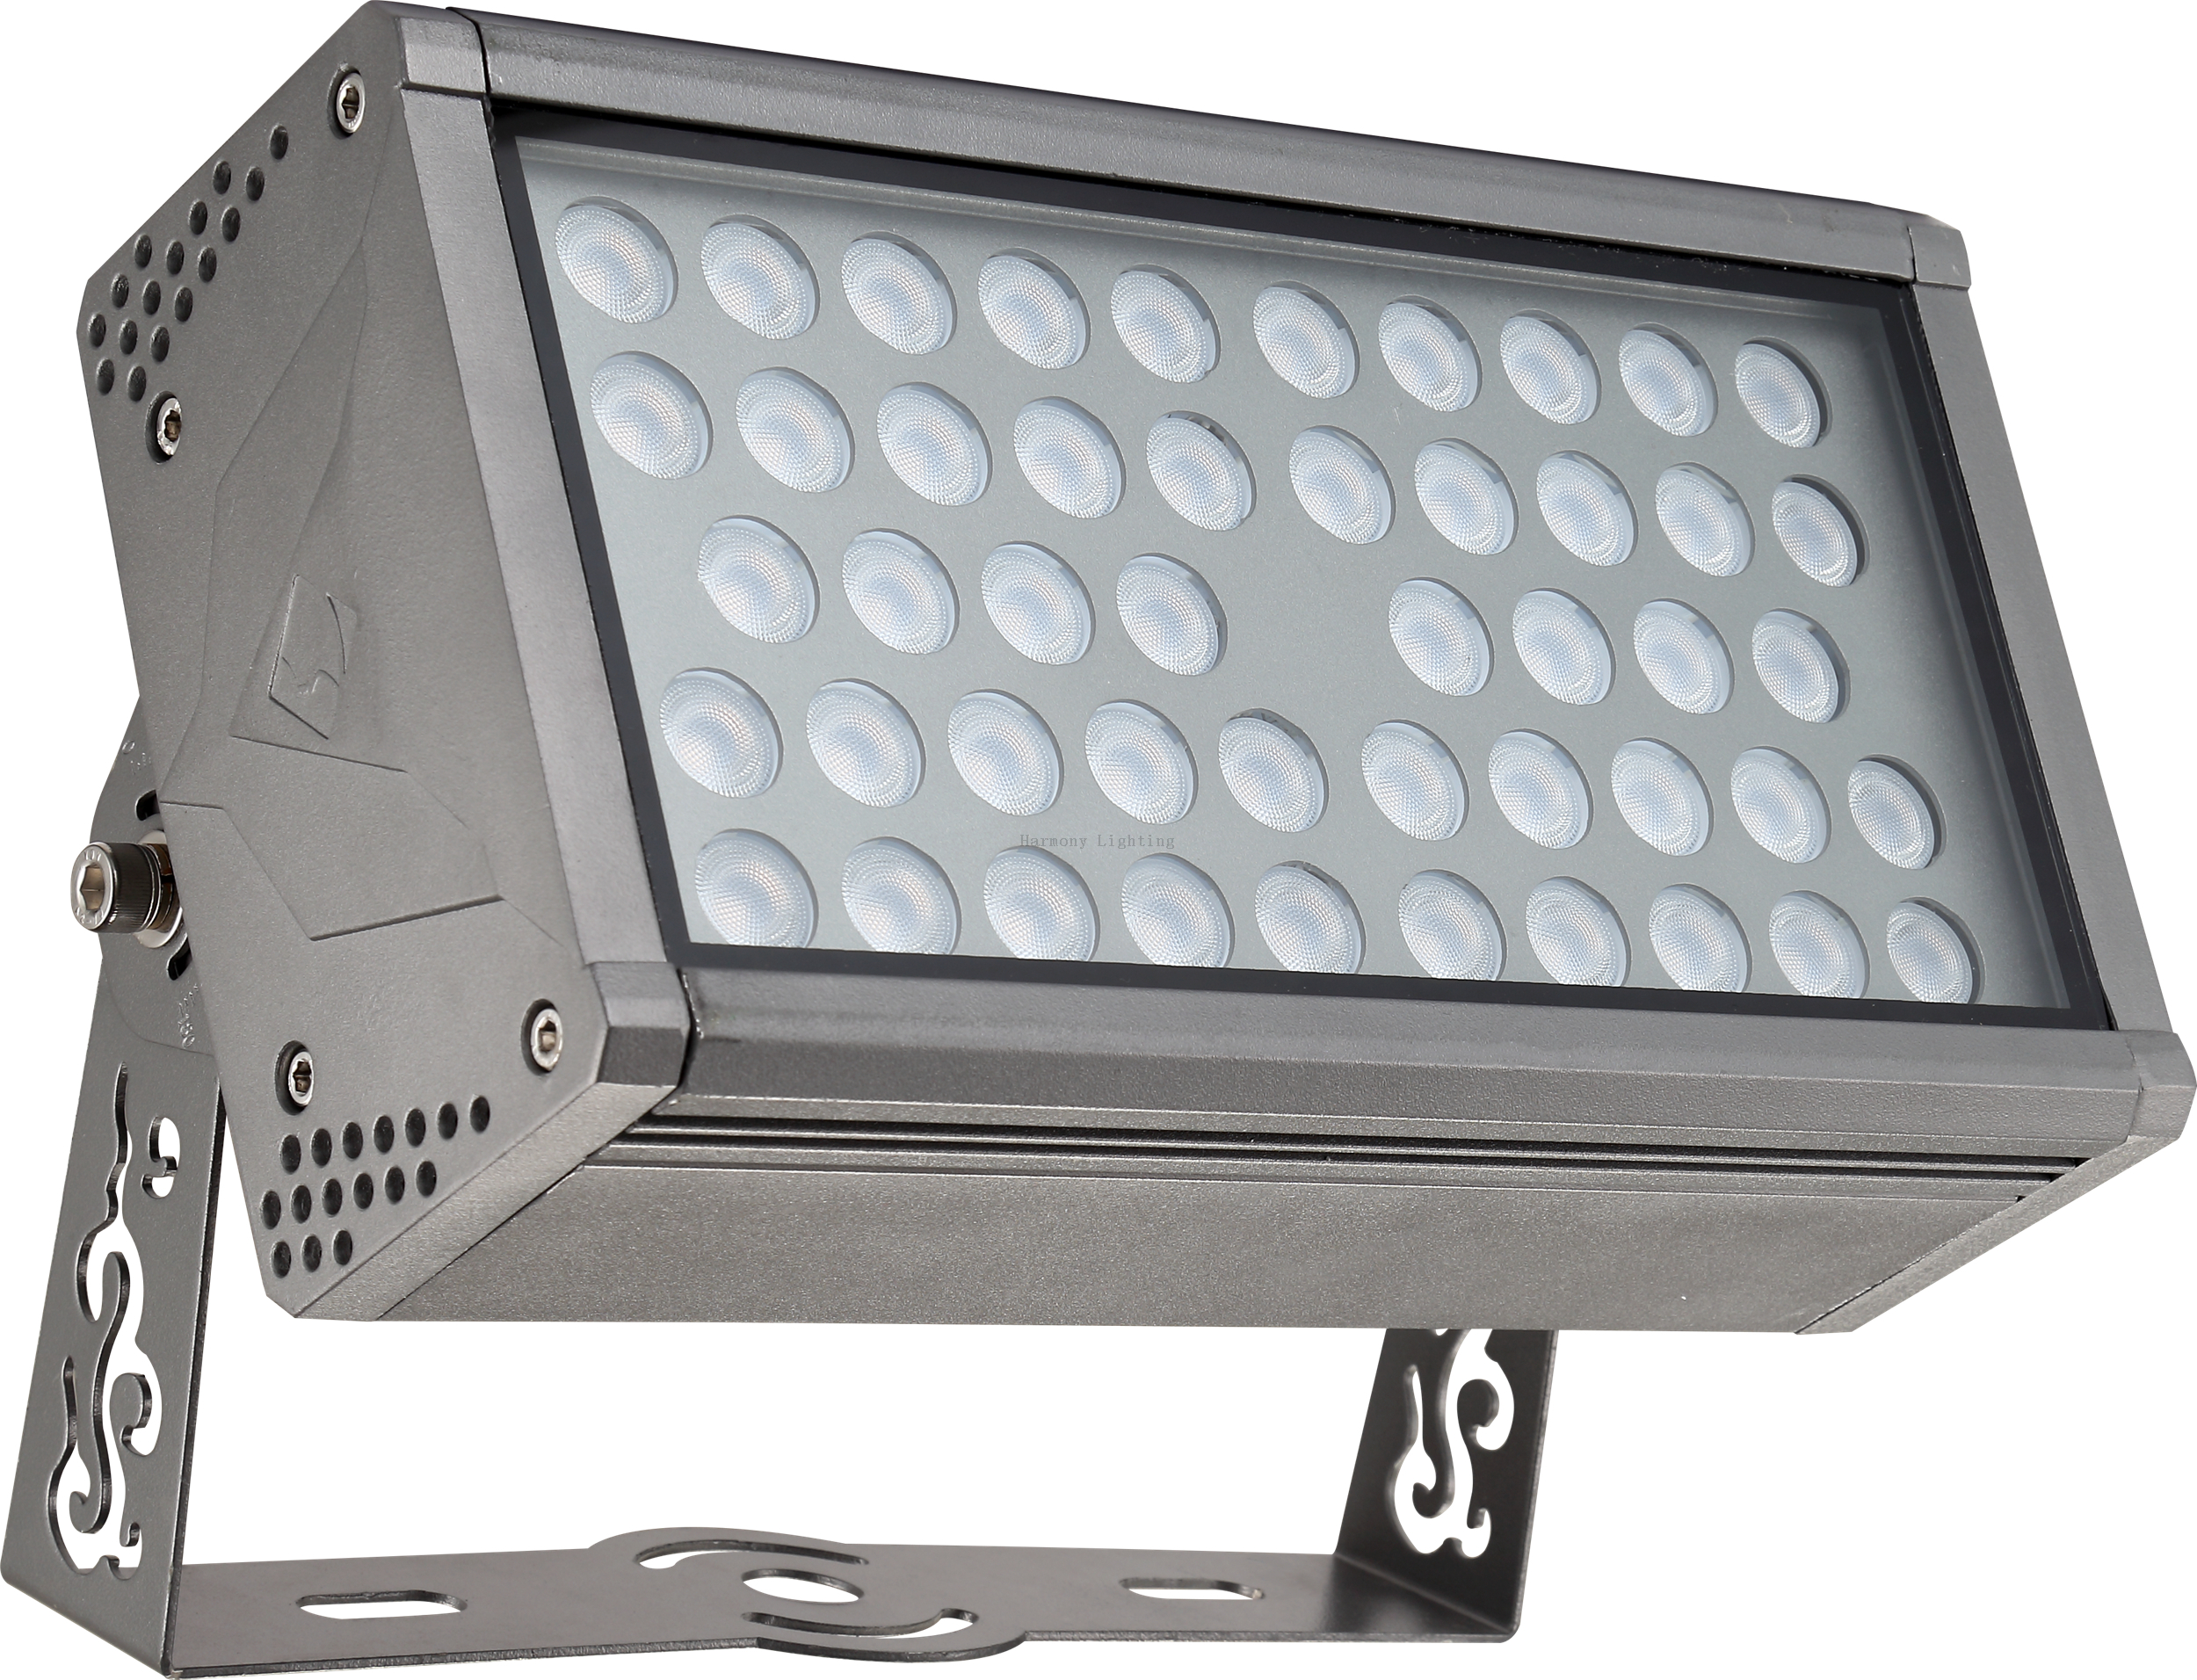 RH-P10 Light Fitting Architectural Floodlighting IP66 CE AC110 AC220 DC24 81W CREE LED High Brightness Waterproof Outdoor Project Flood Lamp Iluminacion Luminares